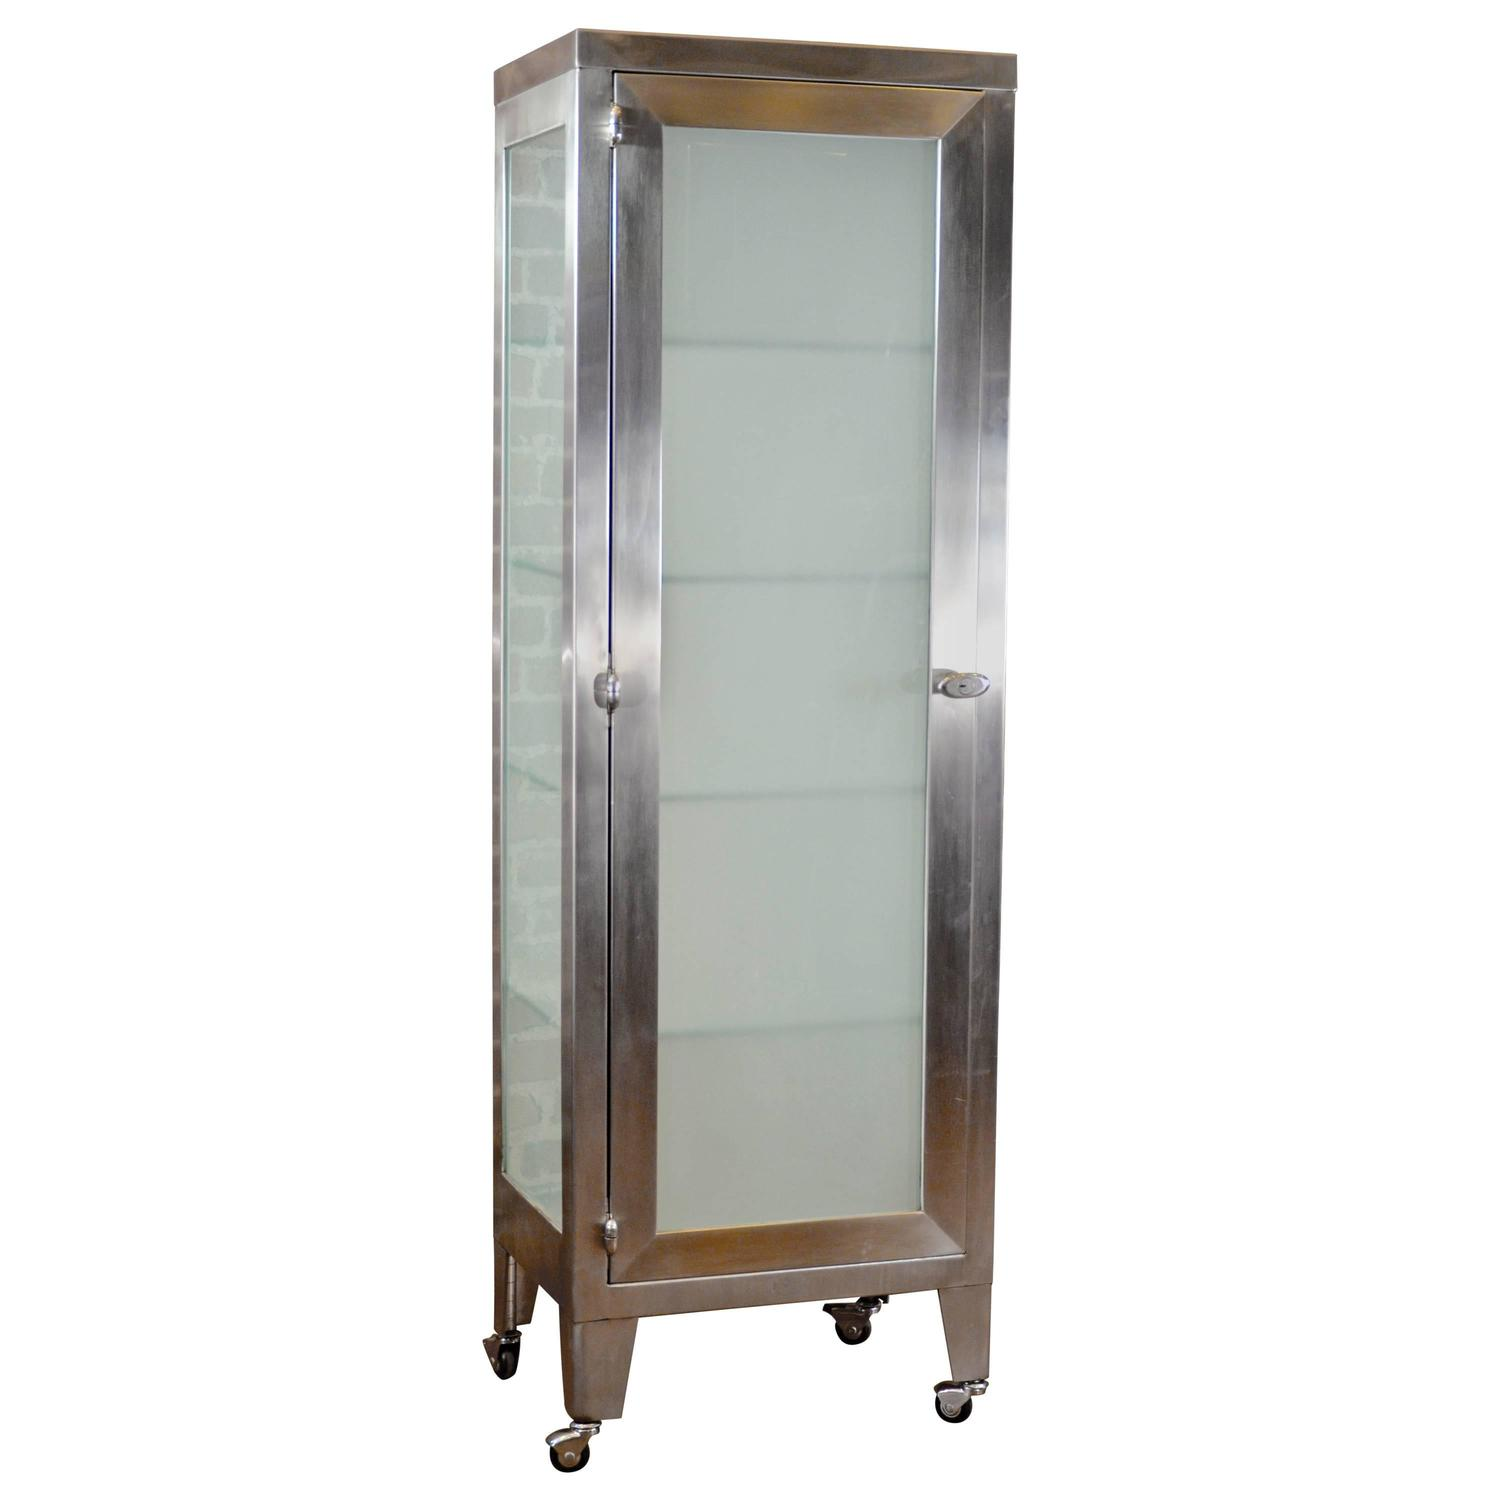 Stainless Steel Medical Cabinet at 1stdibs